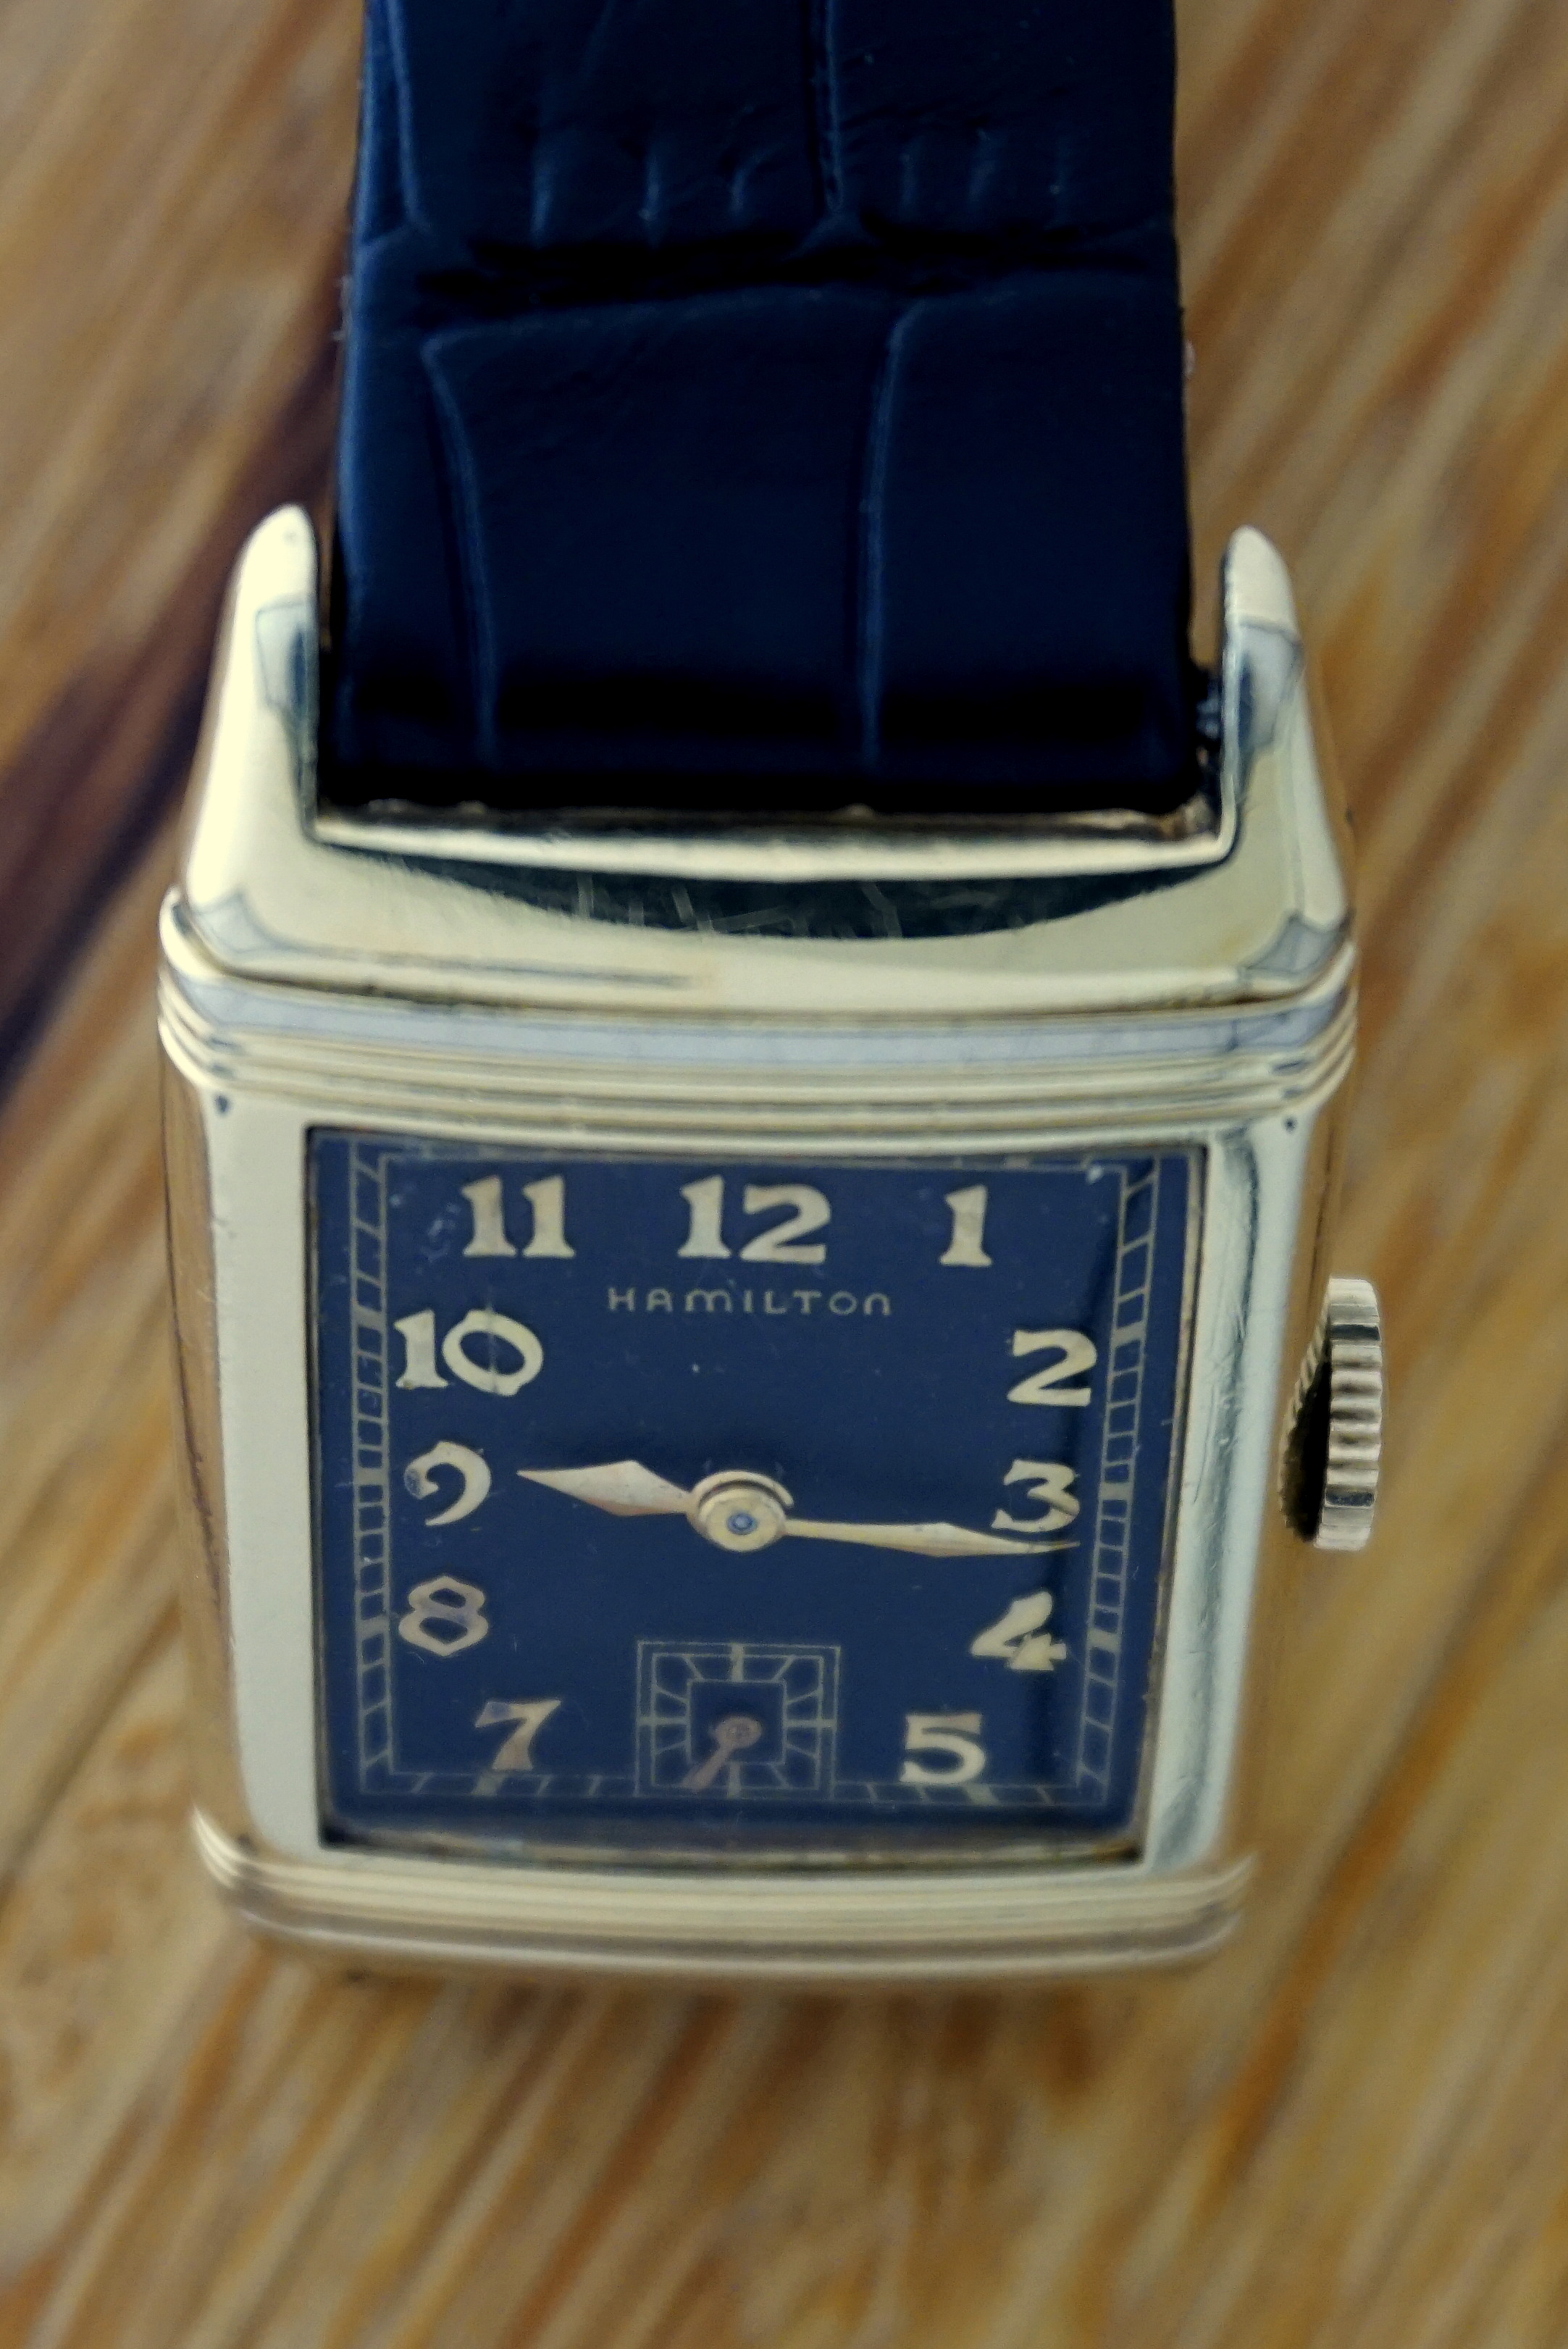 Art Stores In Hamilton Vintage Hamilton Otis Watch